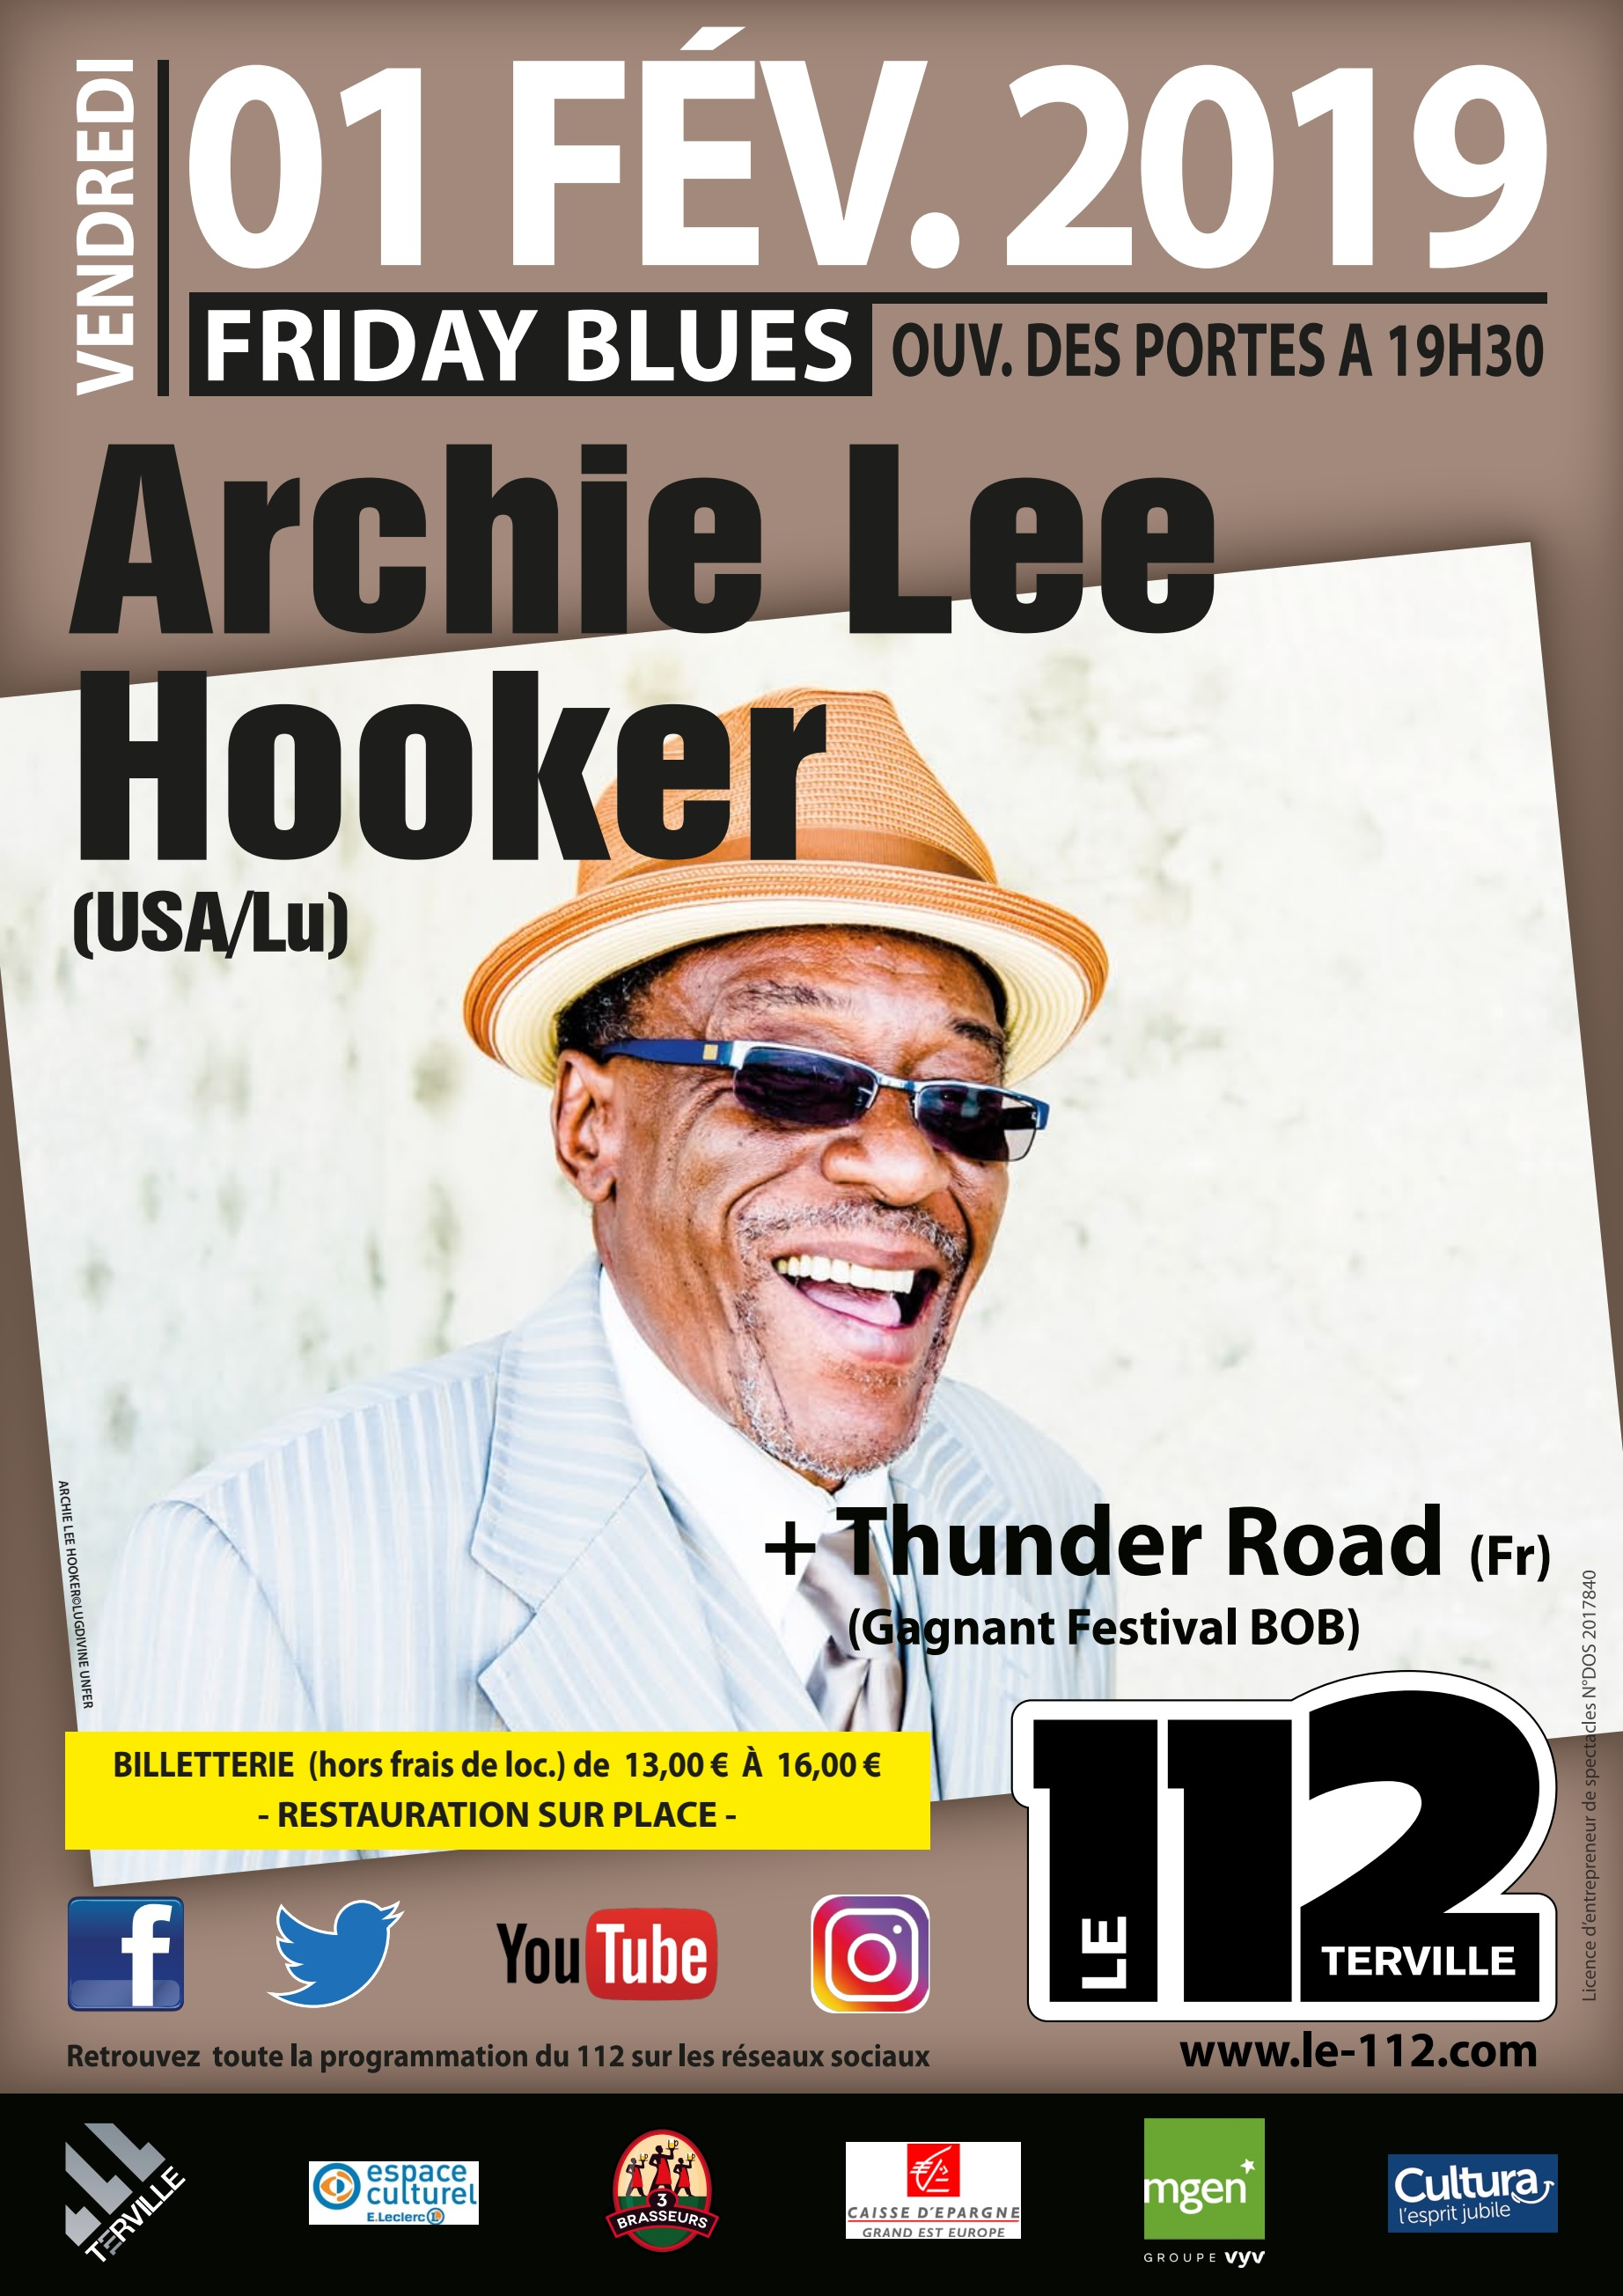 ARCHIE LEE HOOKER + Thunder Road